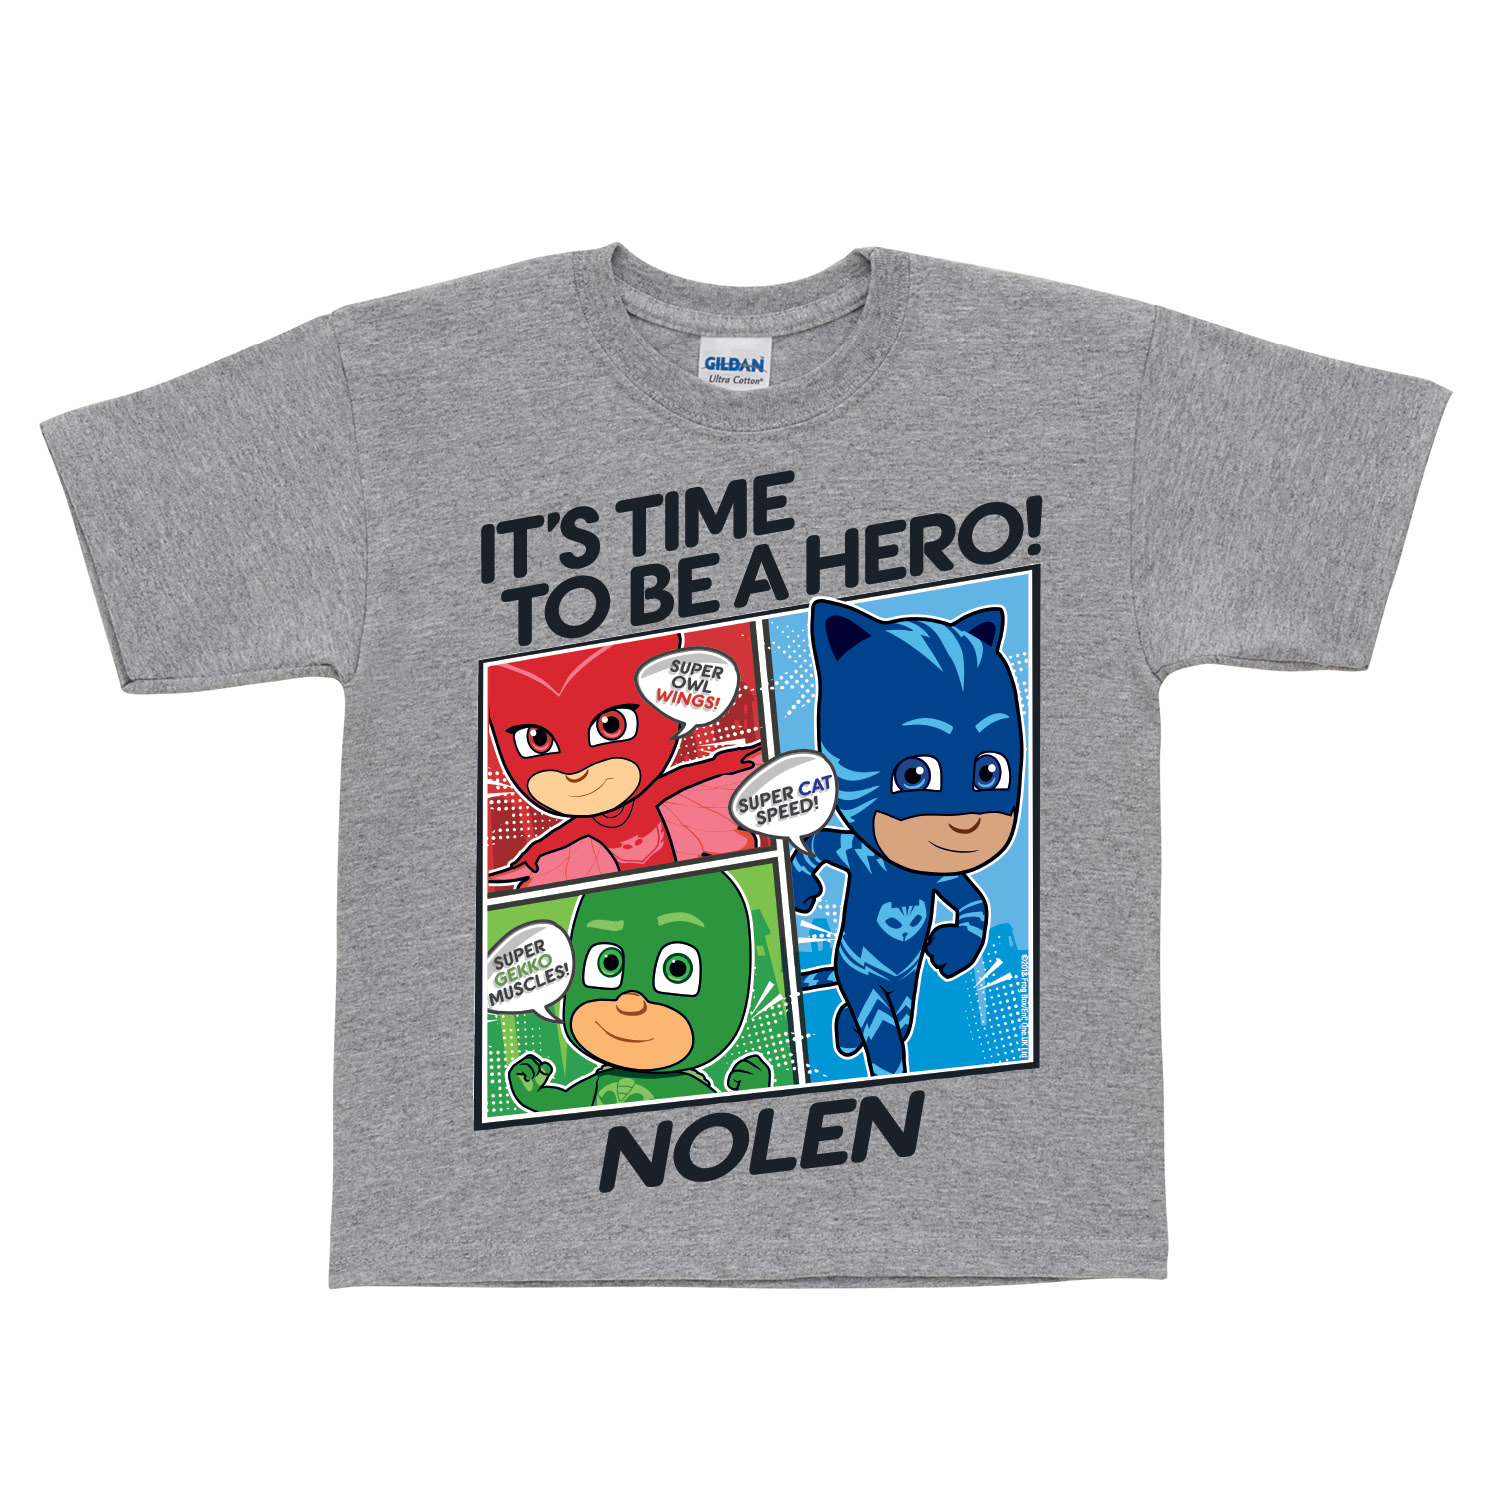 PJ Masks It's Time To Be A Hero Gray Toddler T-Shirt - 2T, 3T, 4T 5/6T